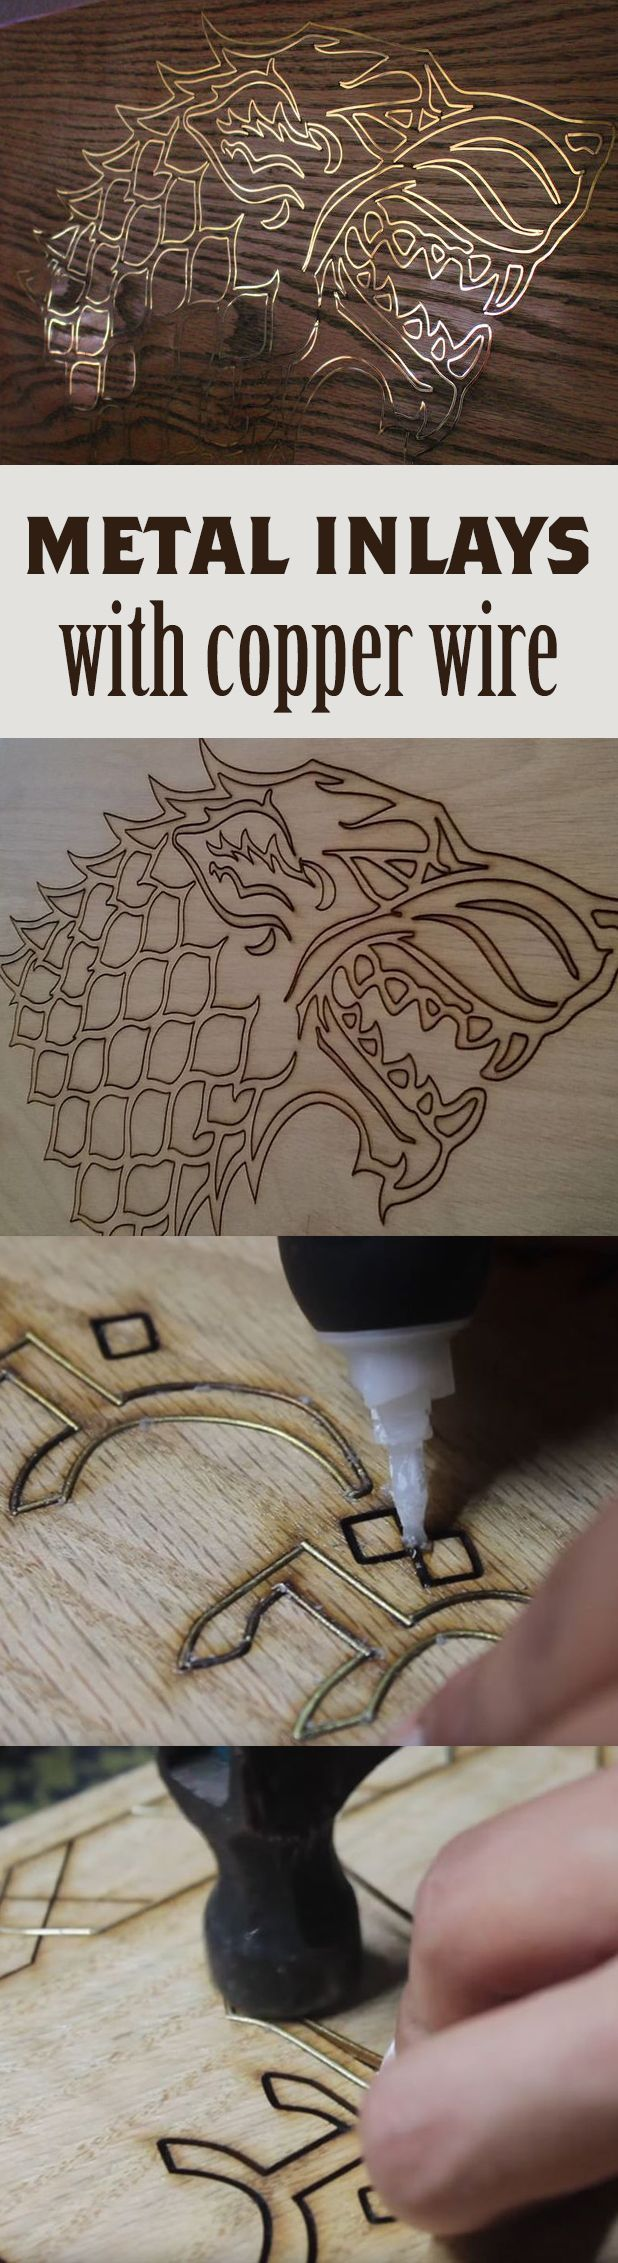 Make your woodworking with copper inlays really unique. #diywoodprojects #unique #woodworking #coppering # making #wine